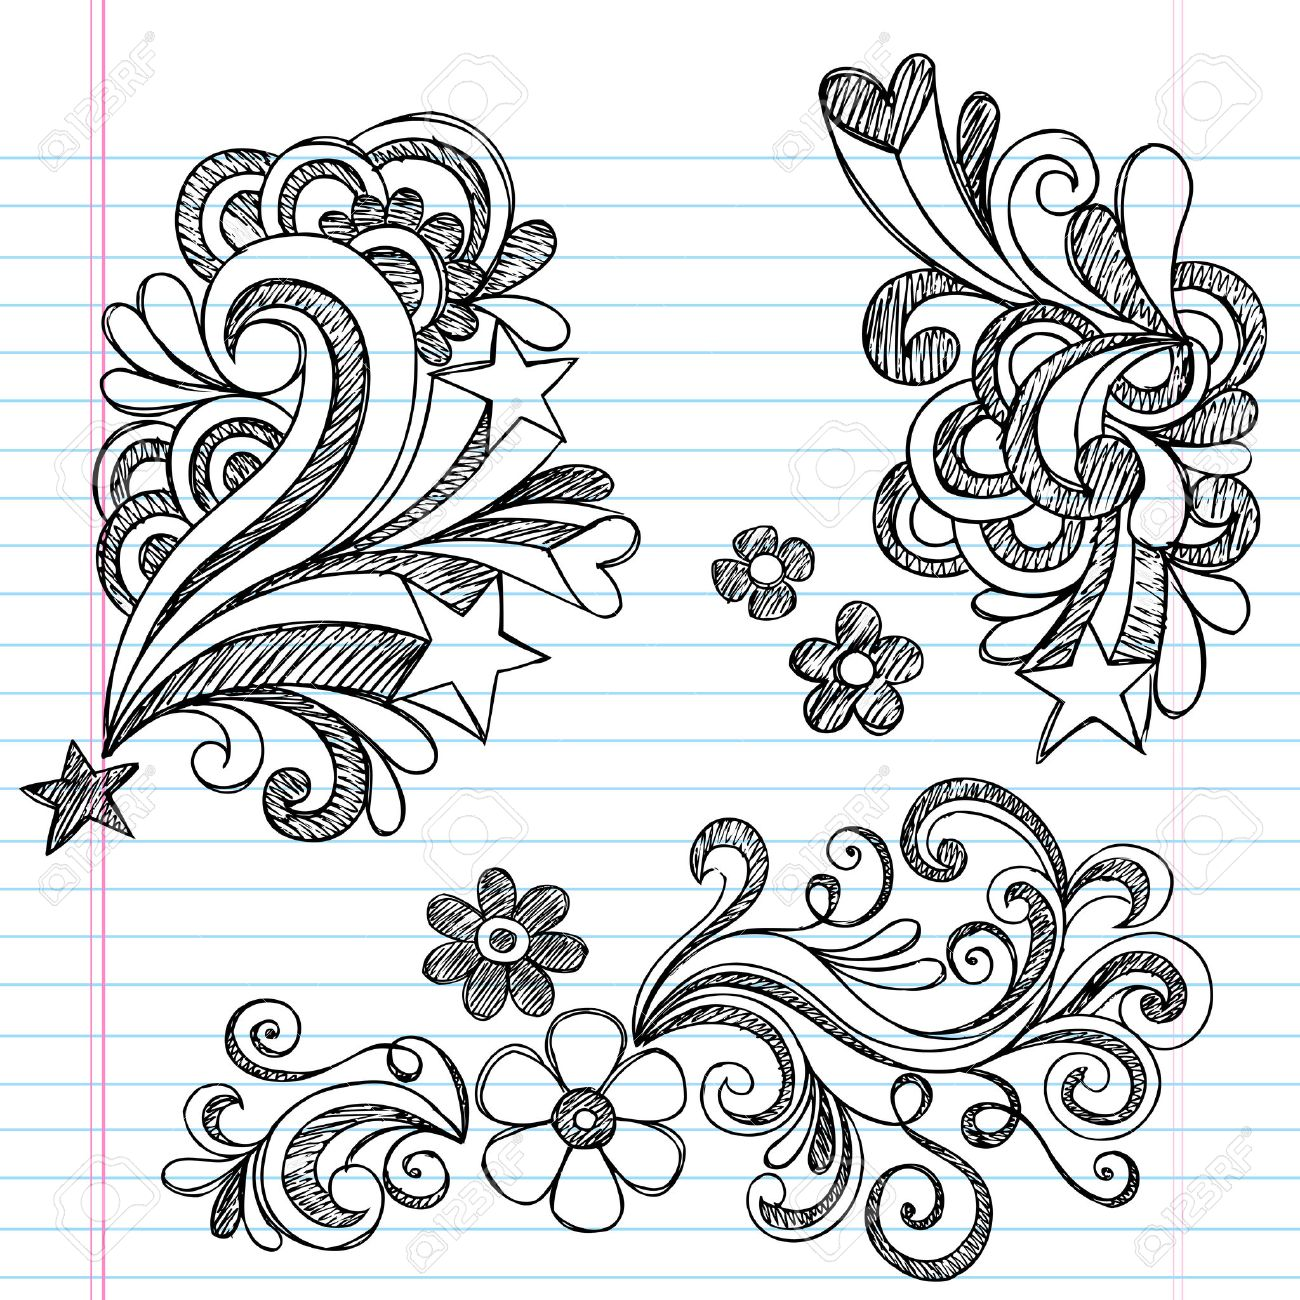 Flower Designs Patterns to Draw Cool Flower Patterns to Draw